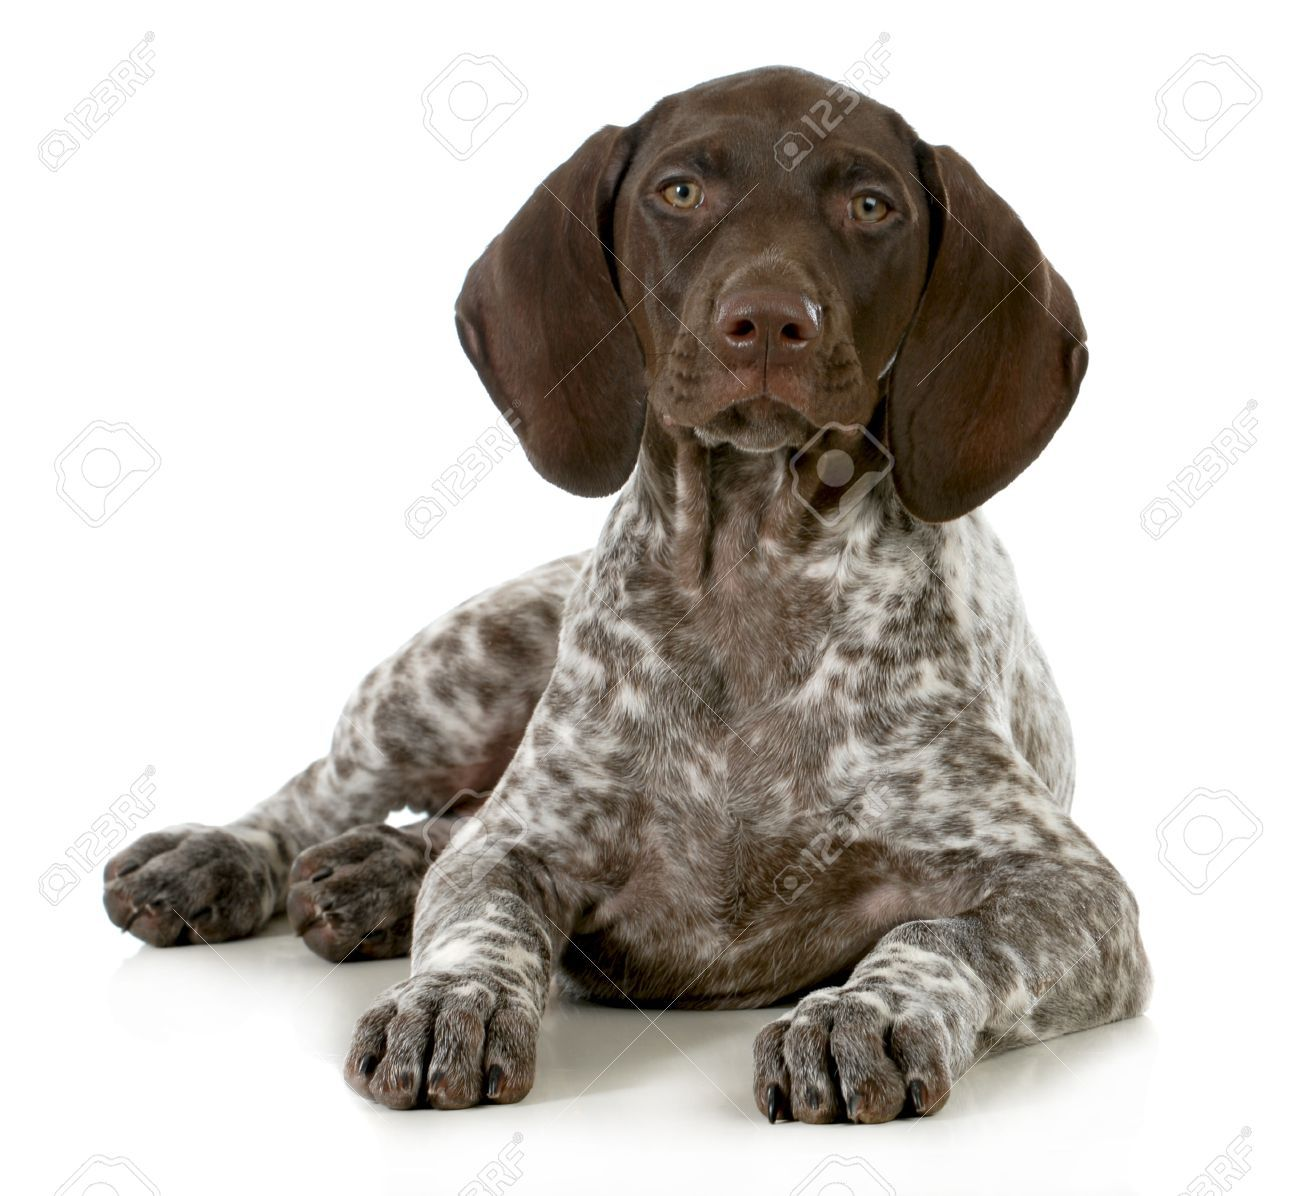 Stock Photo German shorthaired pointer, Pointer puppies